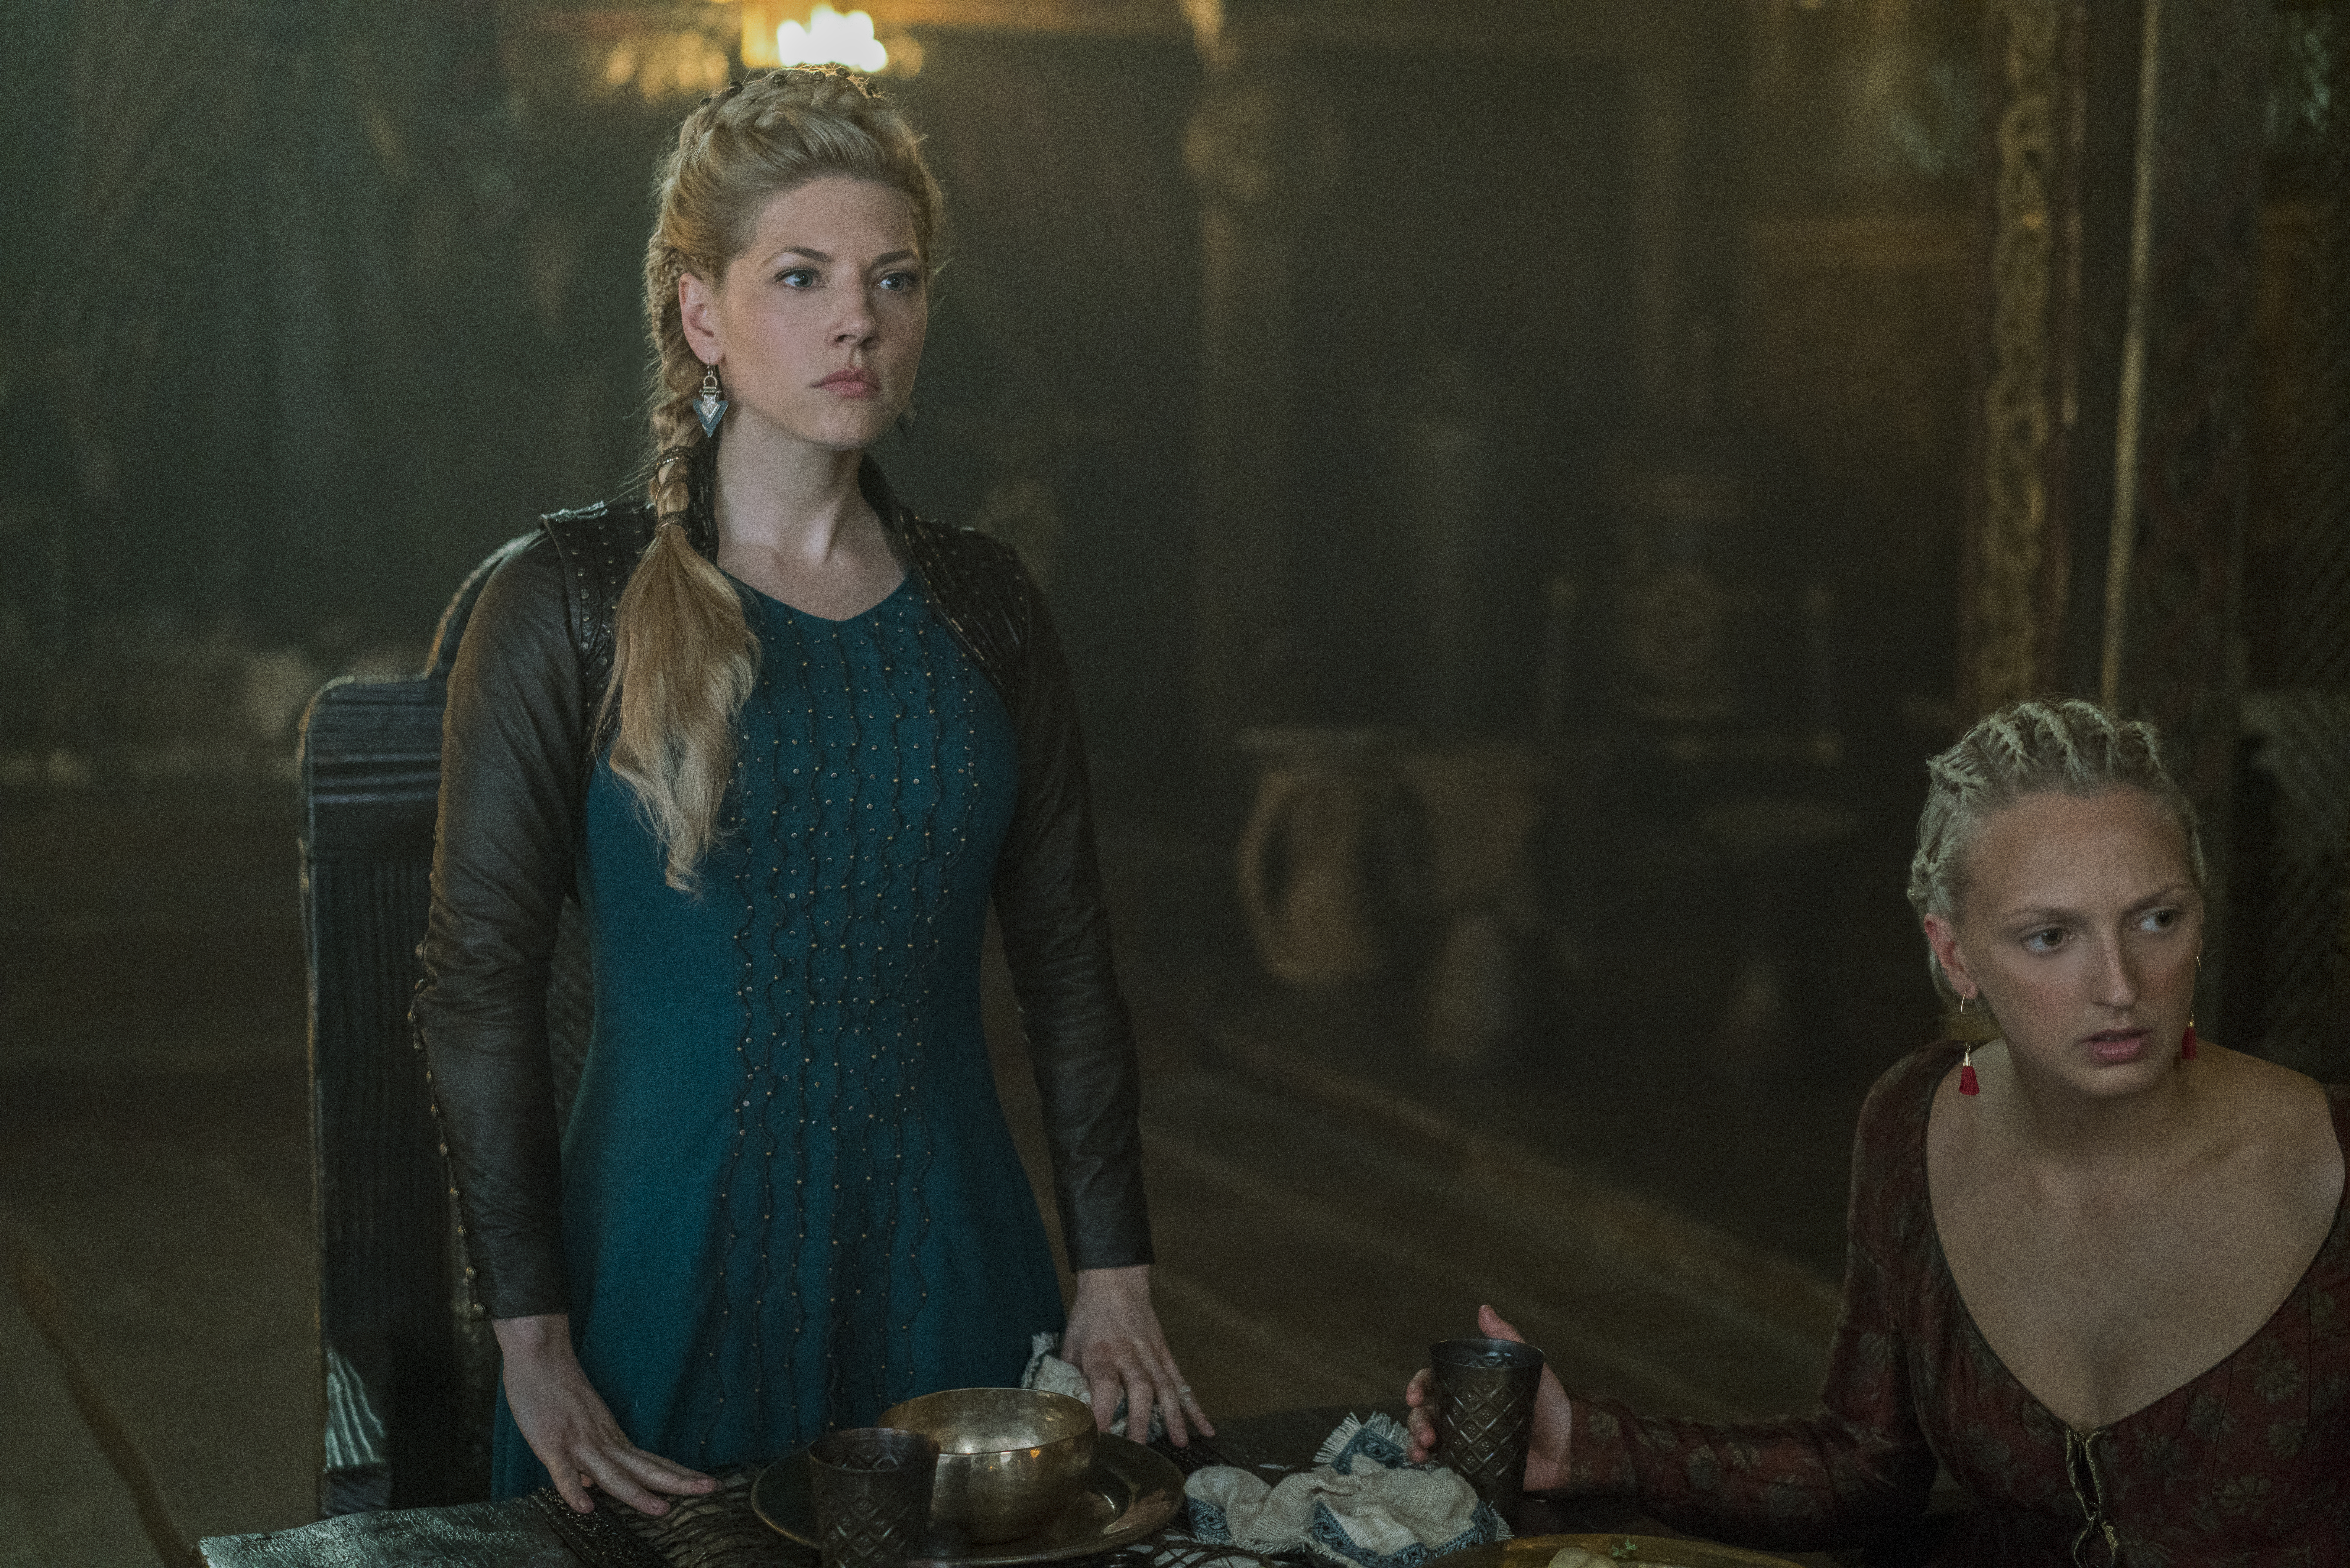 FOX Premium - VIKINGS 5 - Katheryn Winnick es Lagertha